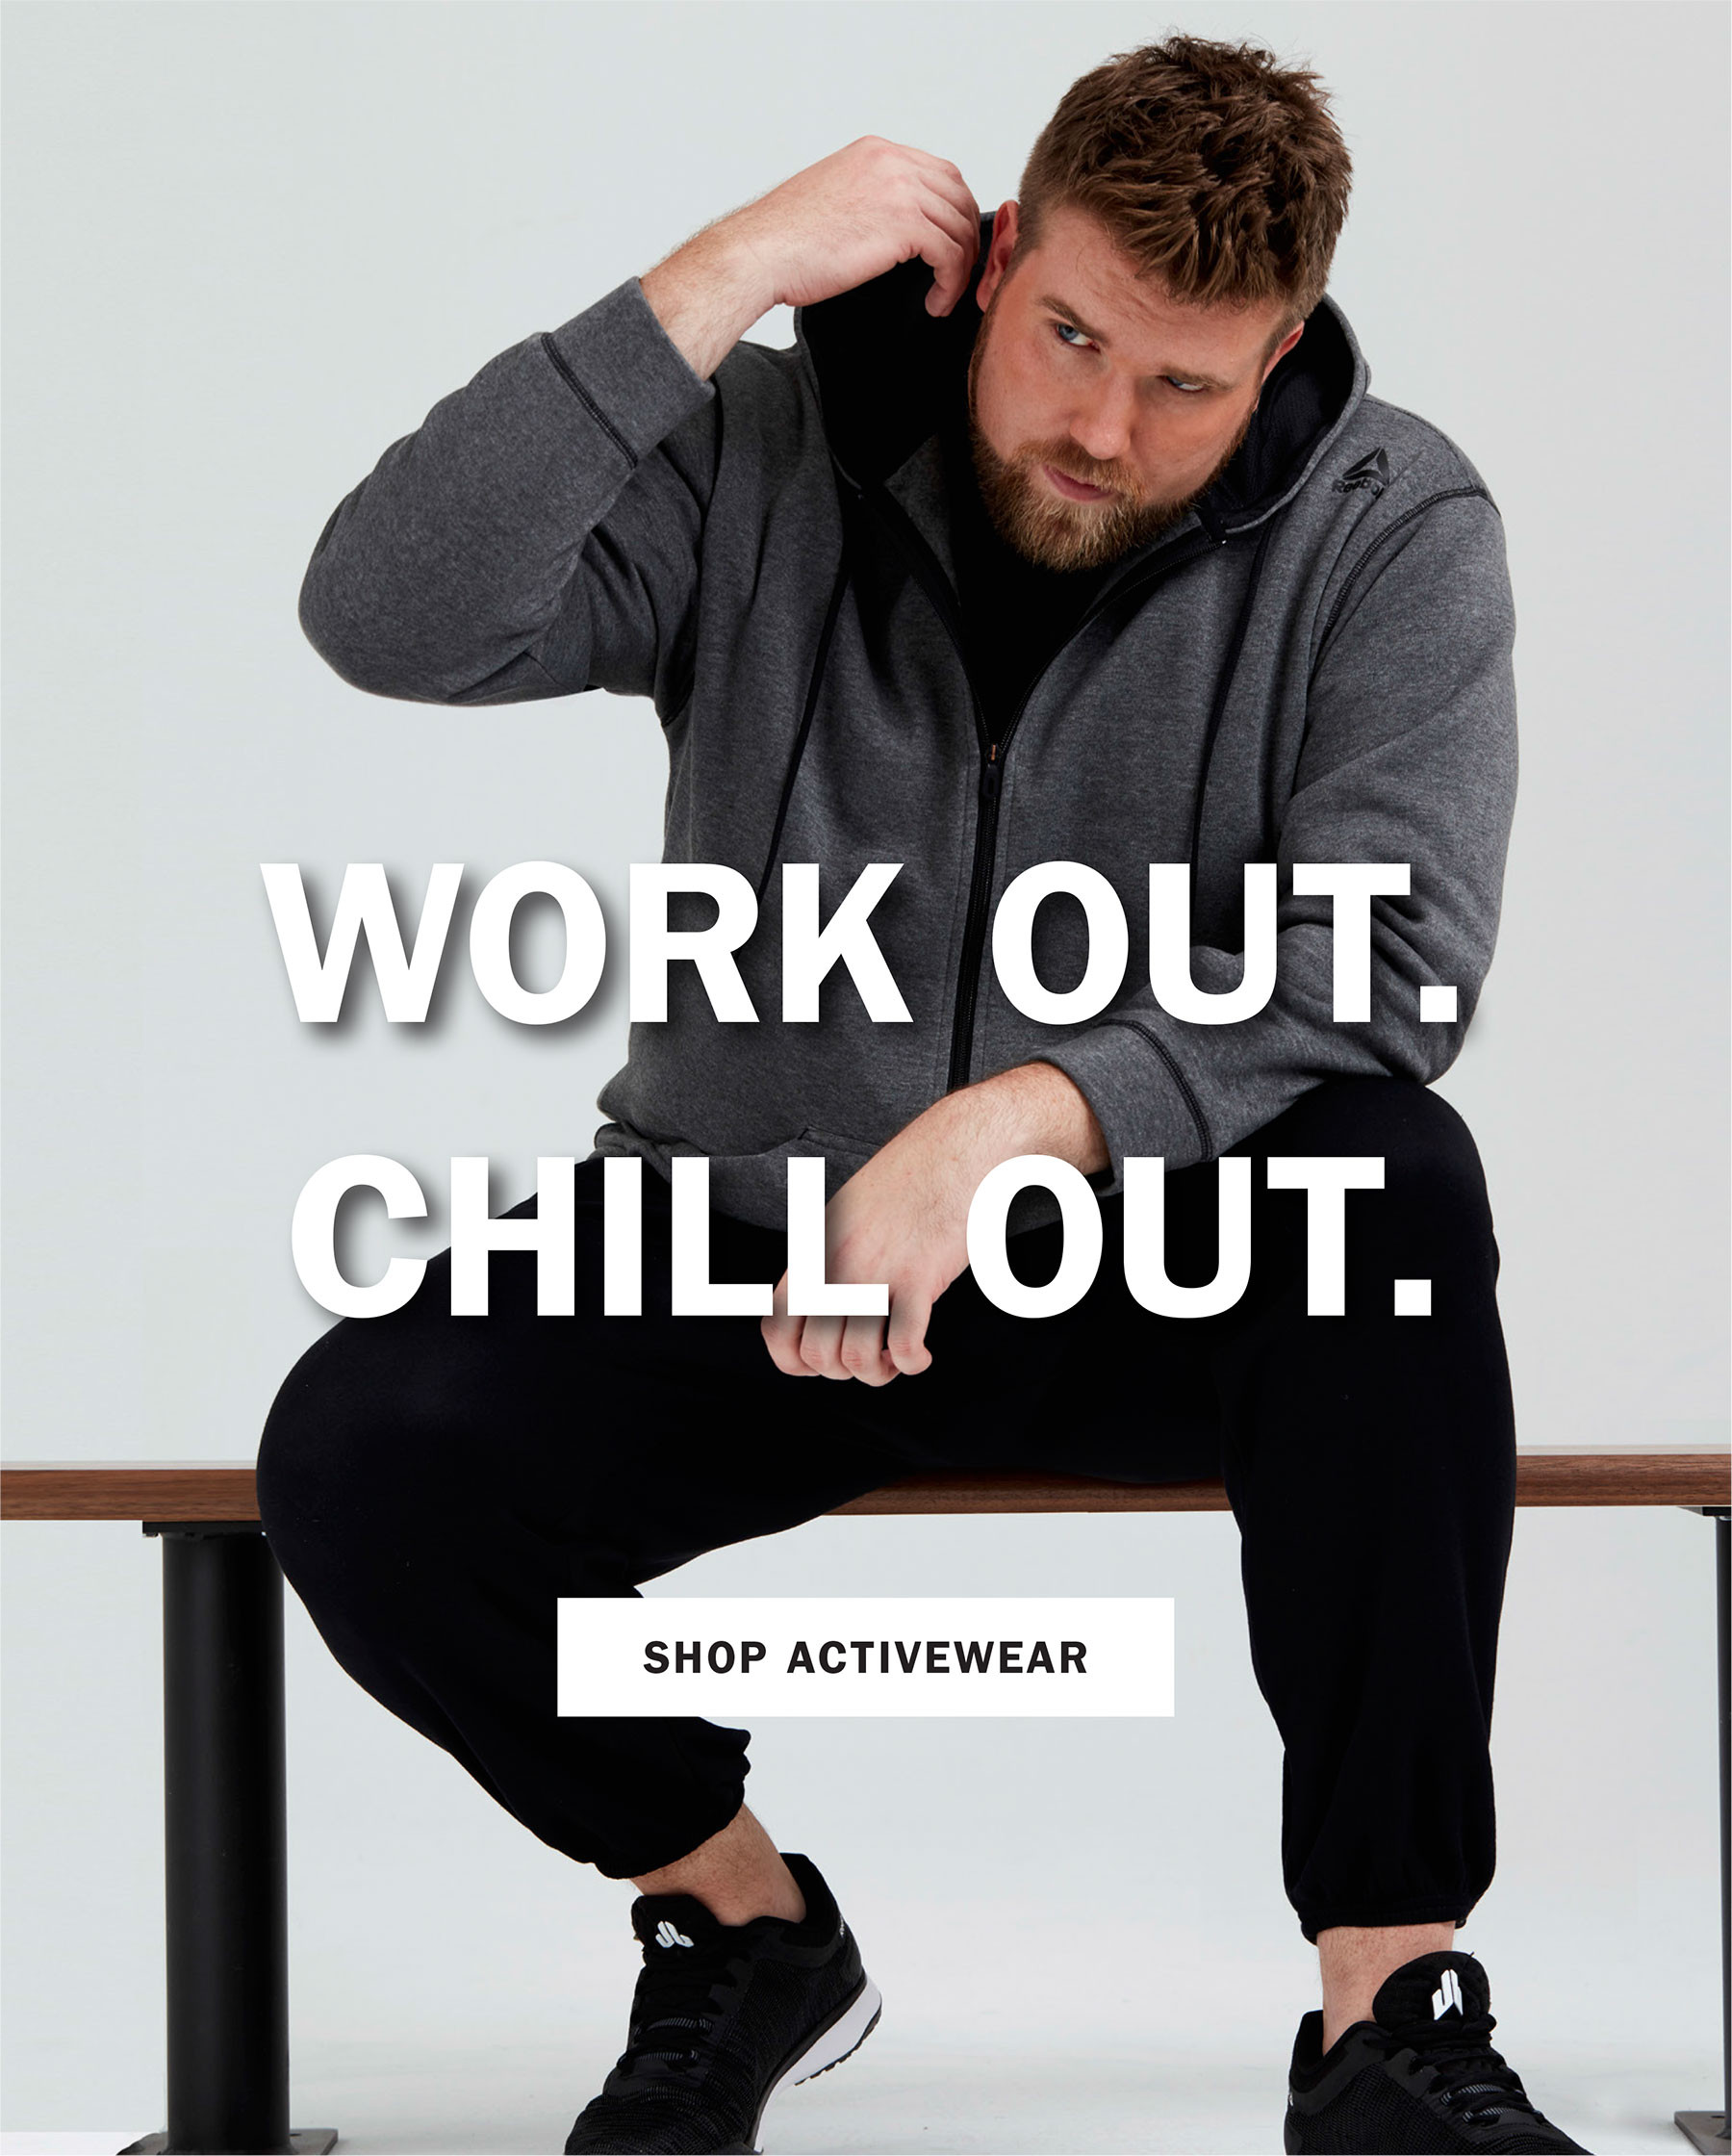 WORK OUT. CHILL OUT. SHOP ACTIVEWEAR